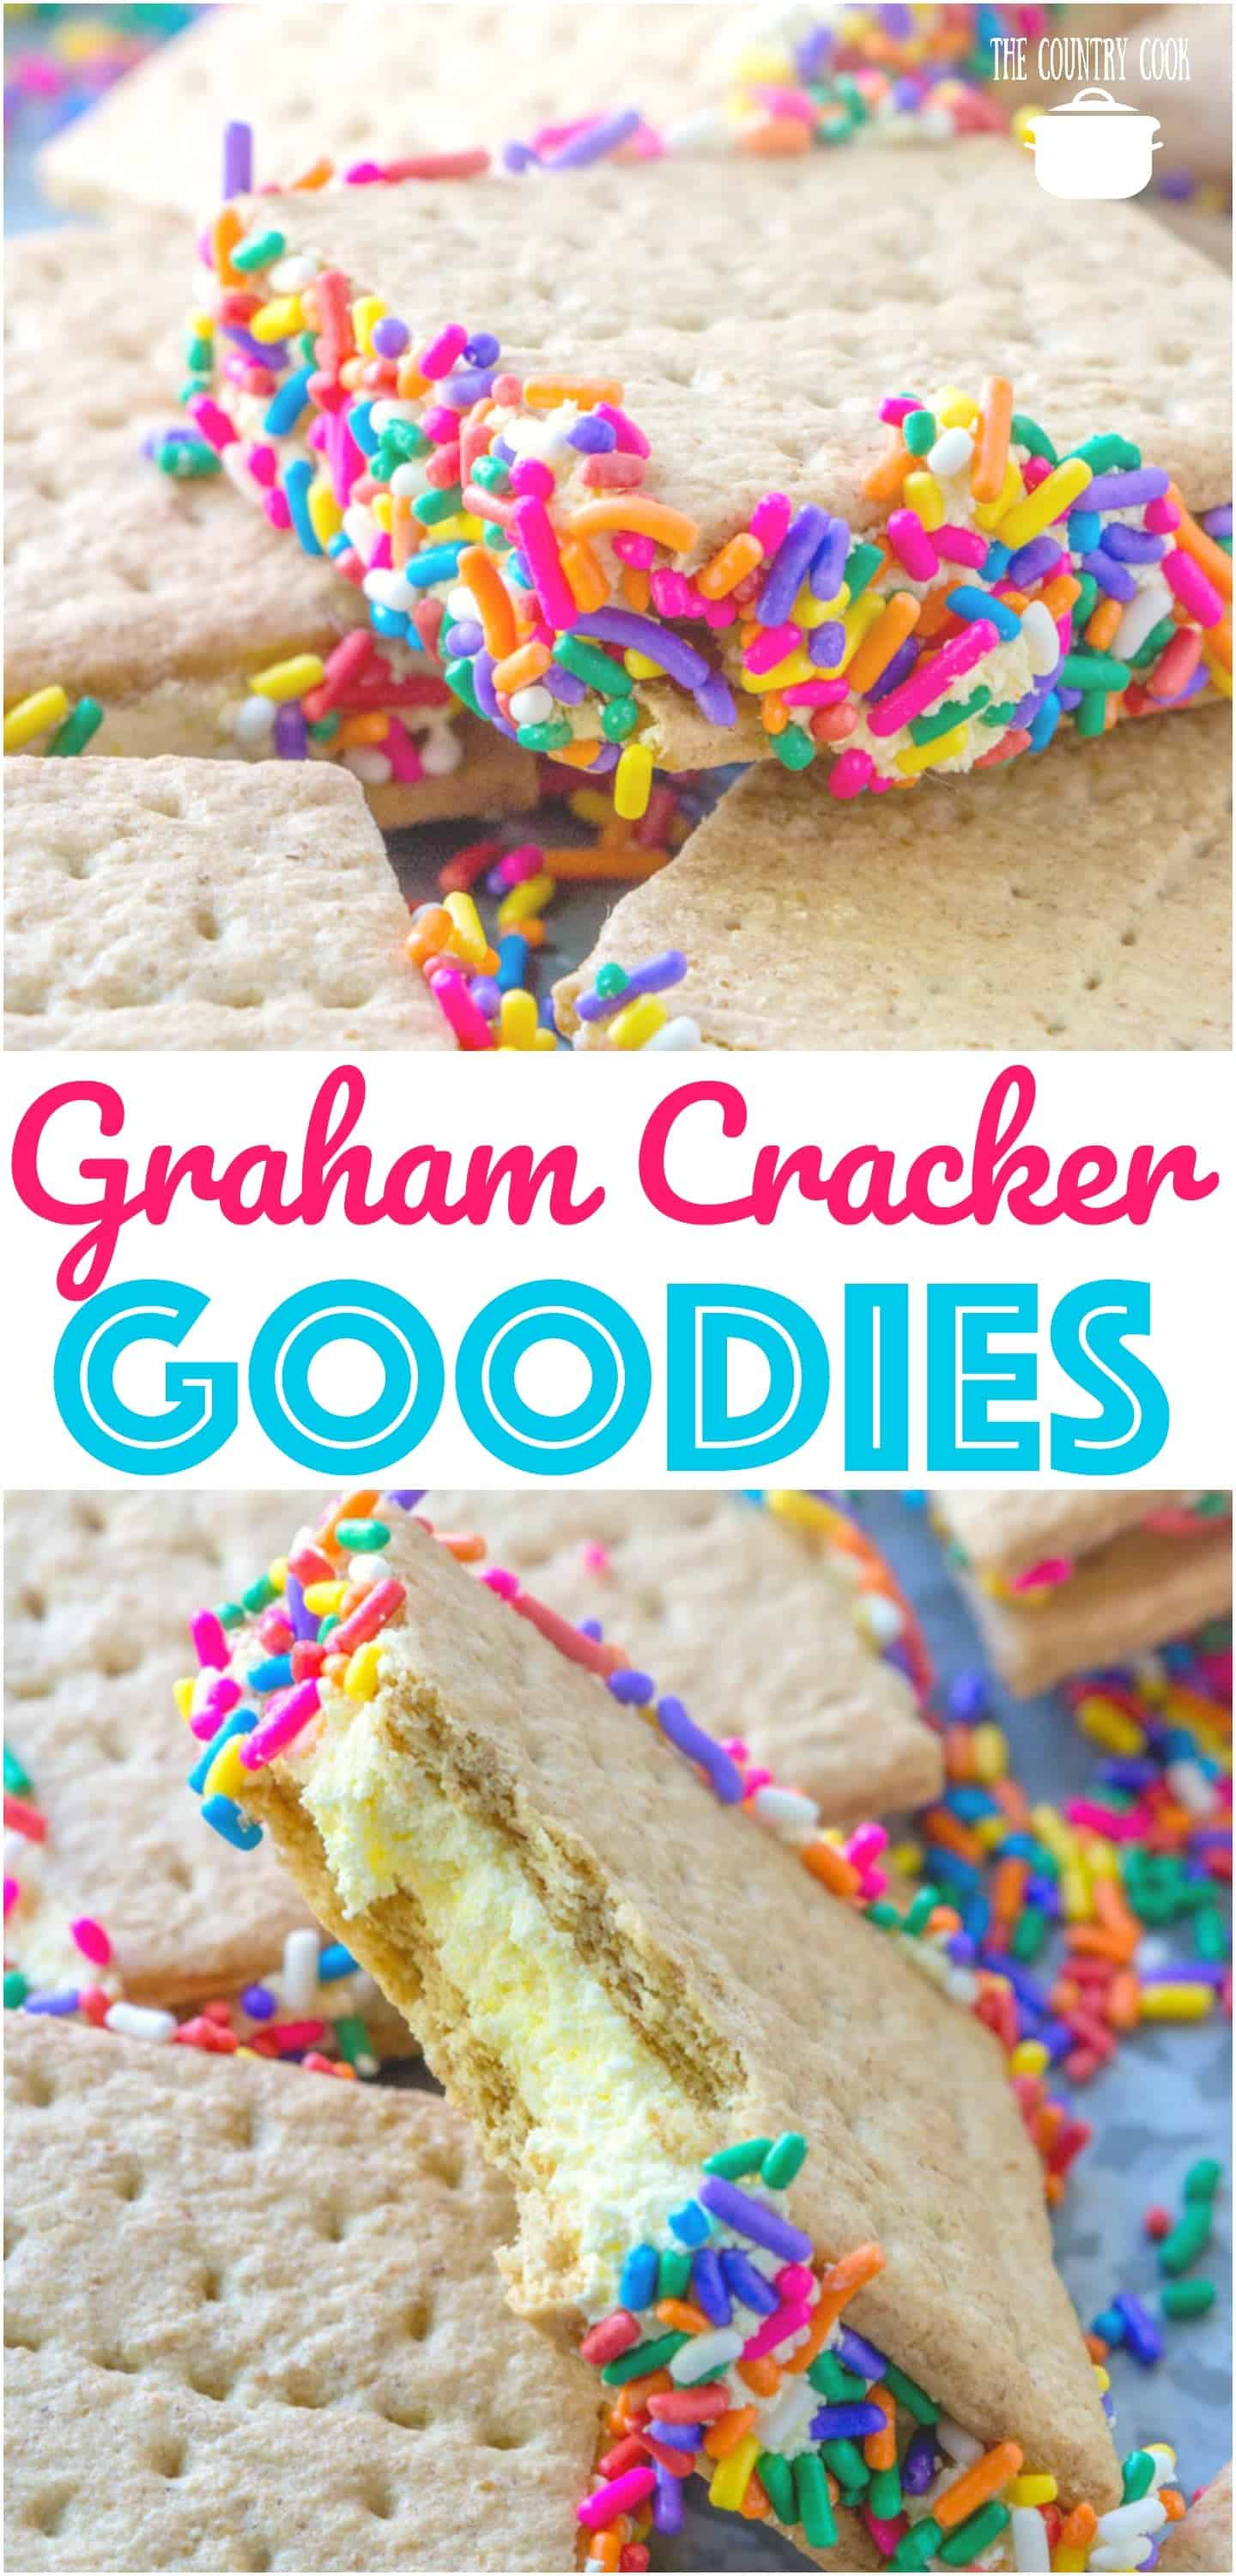 No-Bake Graham Cracker Goodies recipe from The Country Cook. Kids love them and they are delicious served cold! #desserts #nobake #grahamcrackers #kids #kidfriendly #summer #treat #easy #ideas